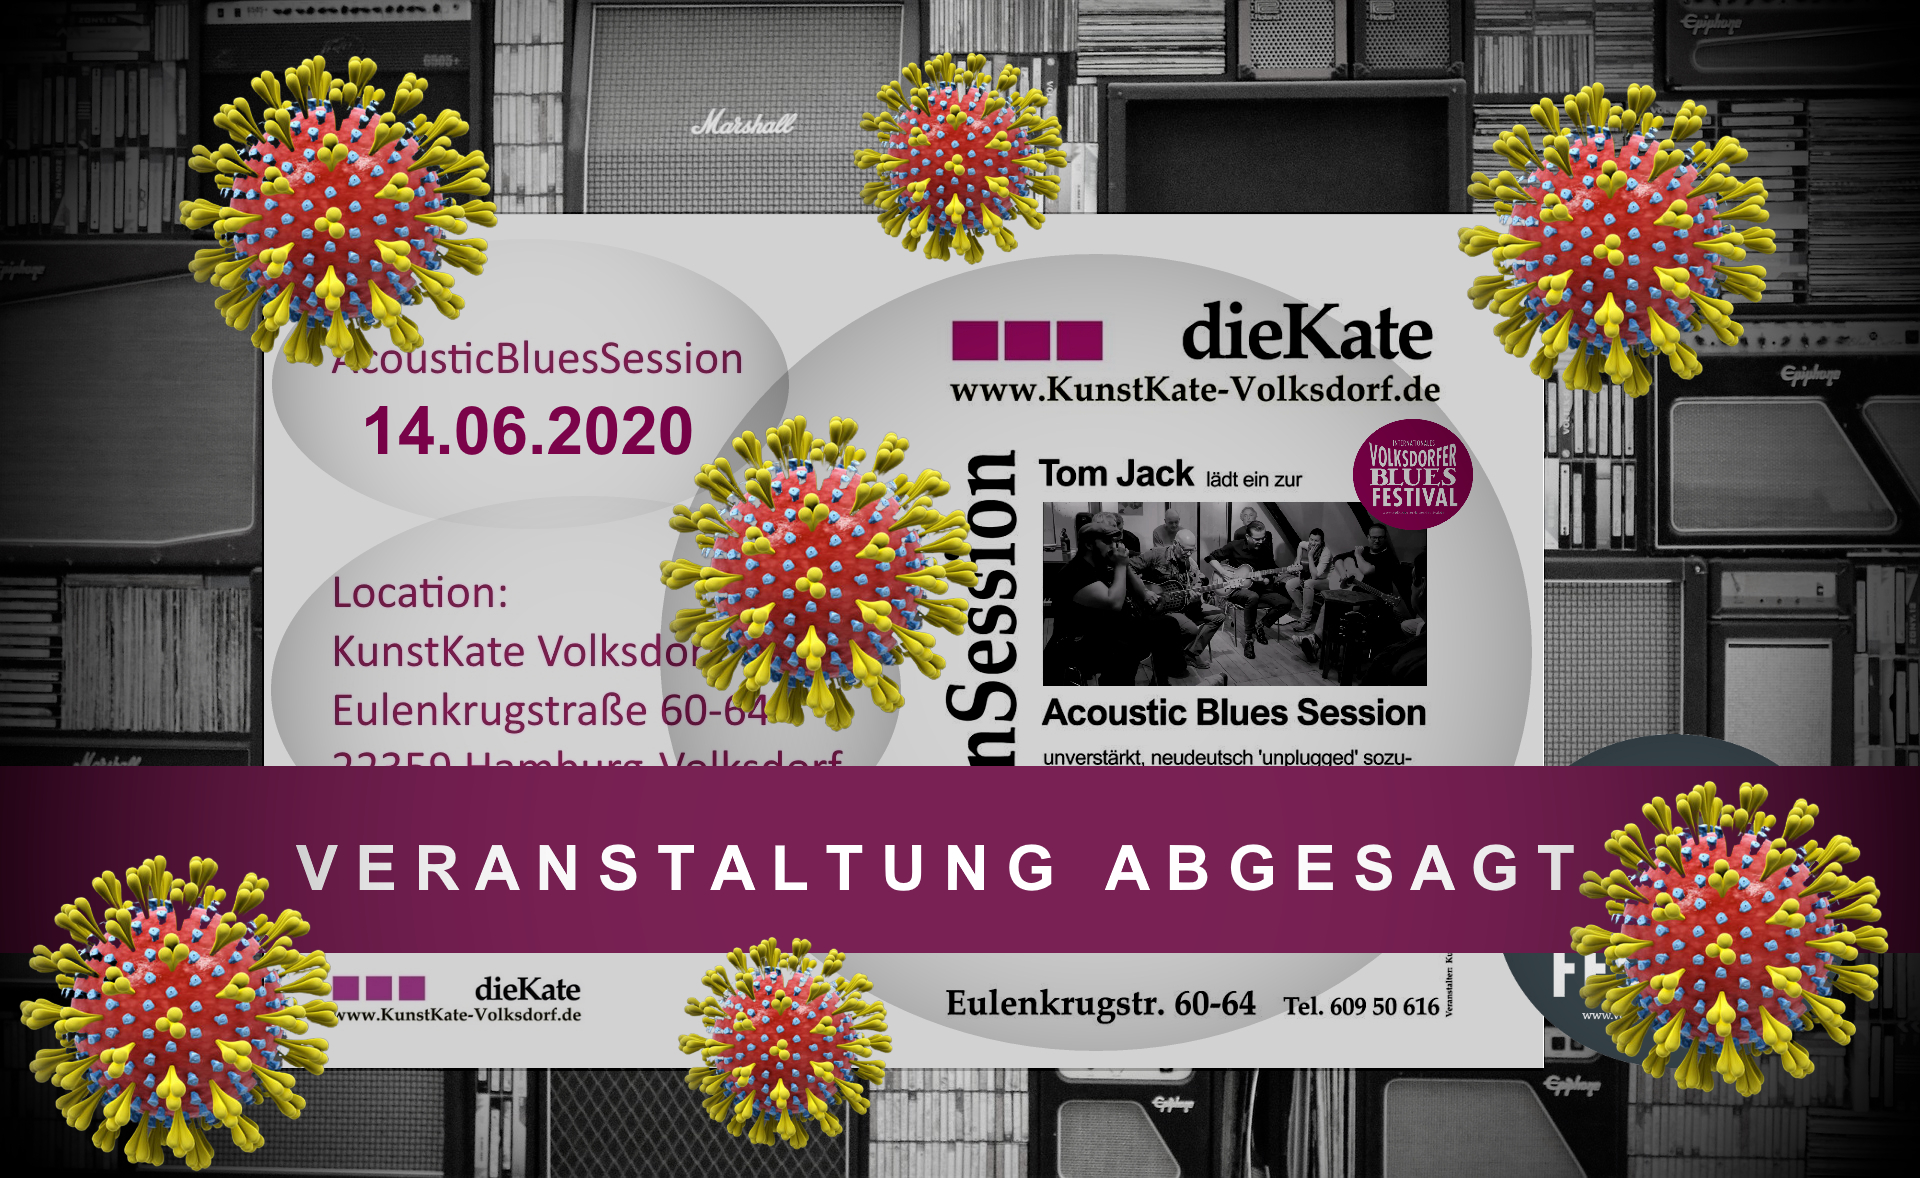 14.06.2020 – Acoustic Blues Session (ABS) – KunstKate Volksdorf